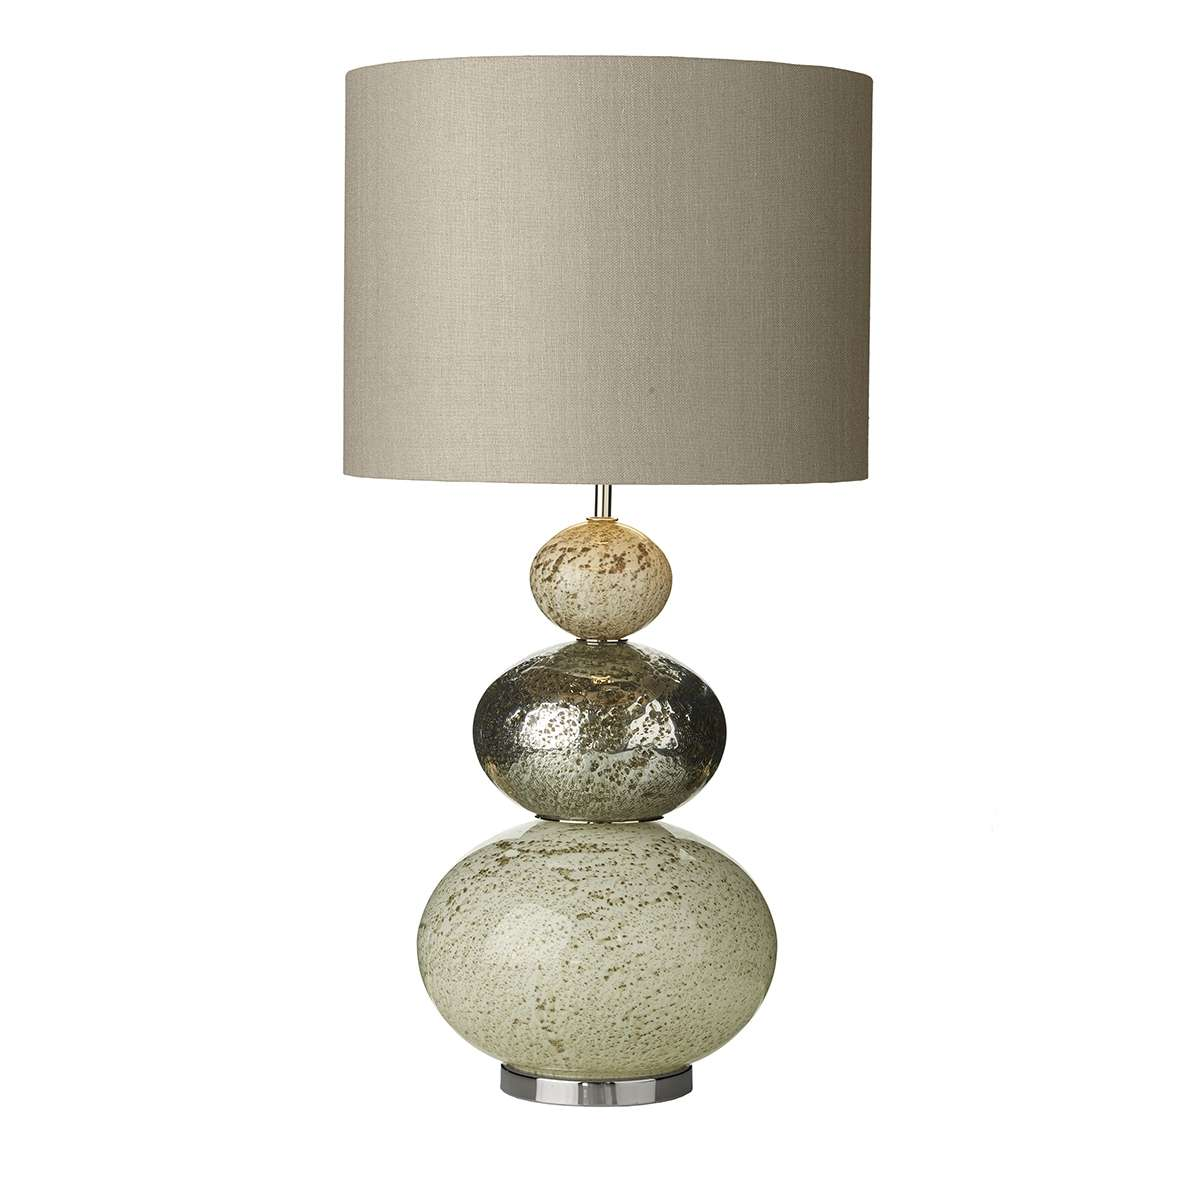 Boavista Volcanic Effect Glass Table Lamp